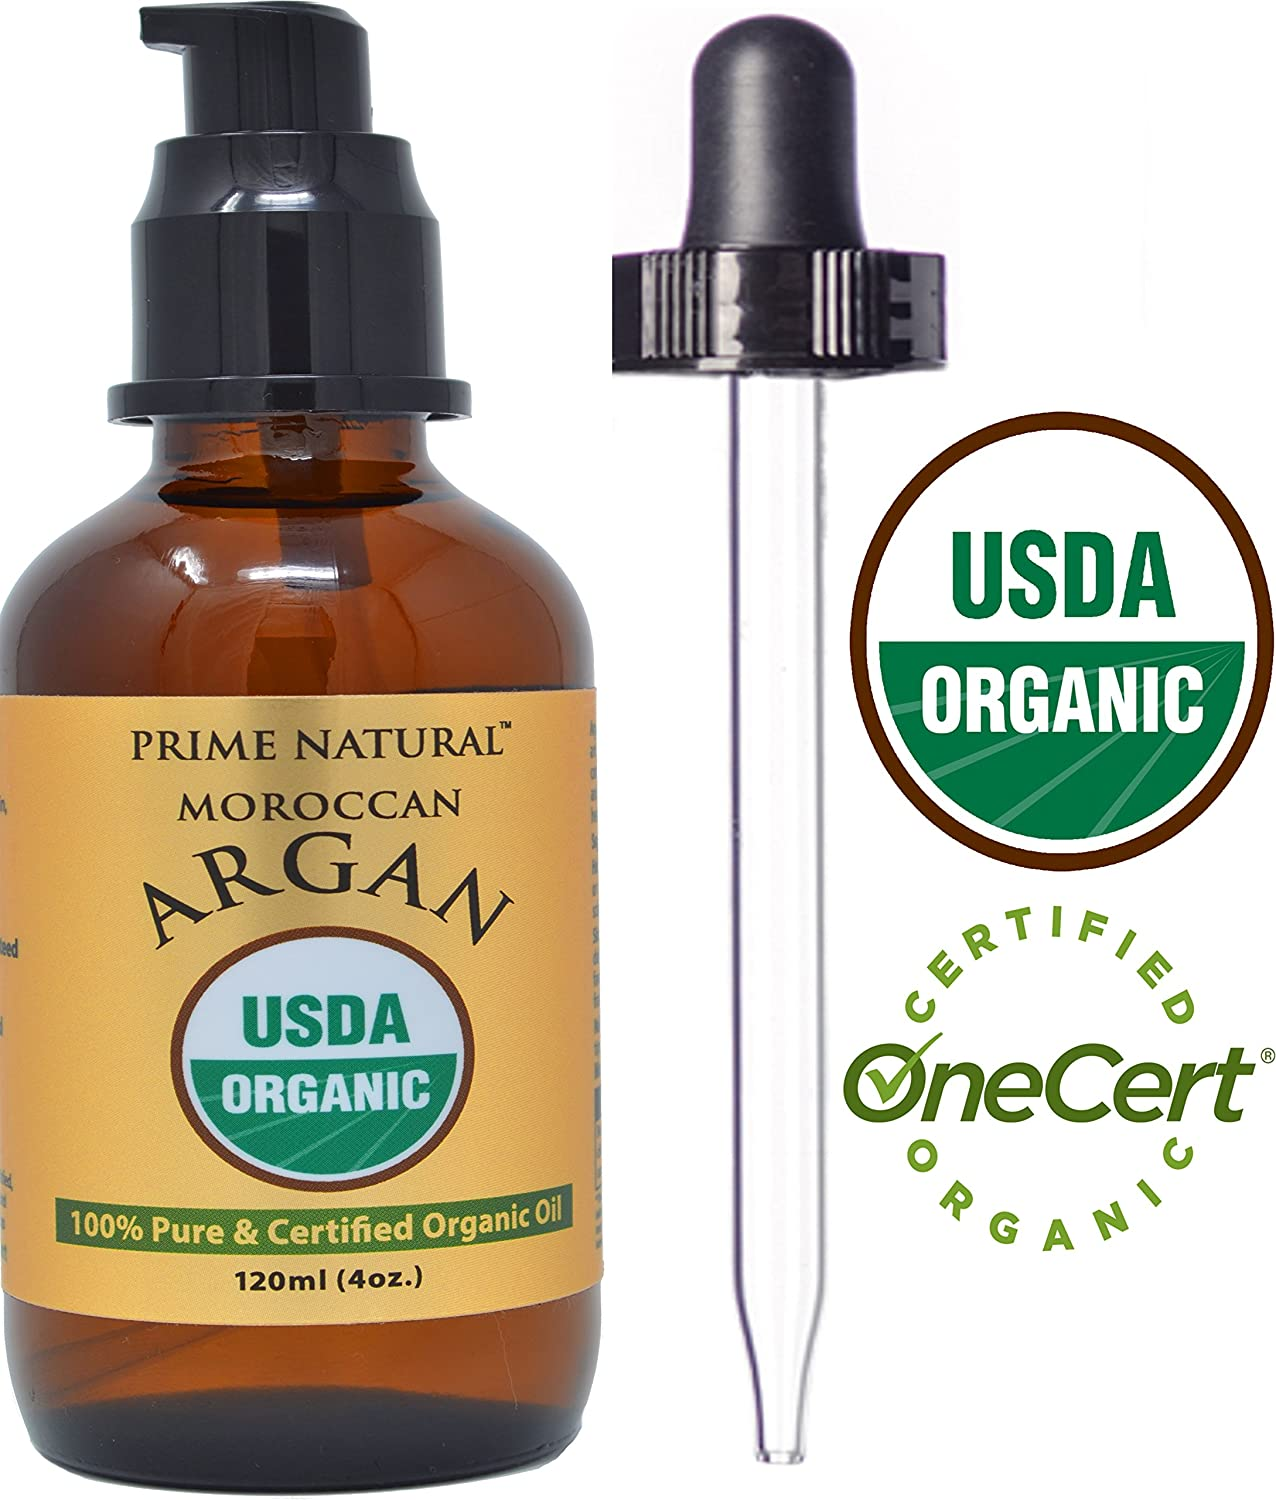 Amazon.com: Moroccan Organic Argan Oil - 4oz USDA Certified - Cold Pressed, Extra  Virgin, Unrefined - 100% Pure Argania Spinosa - Best for Face, Hair, ...